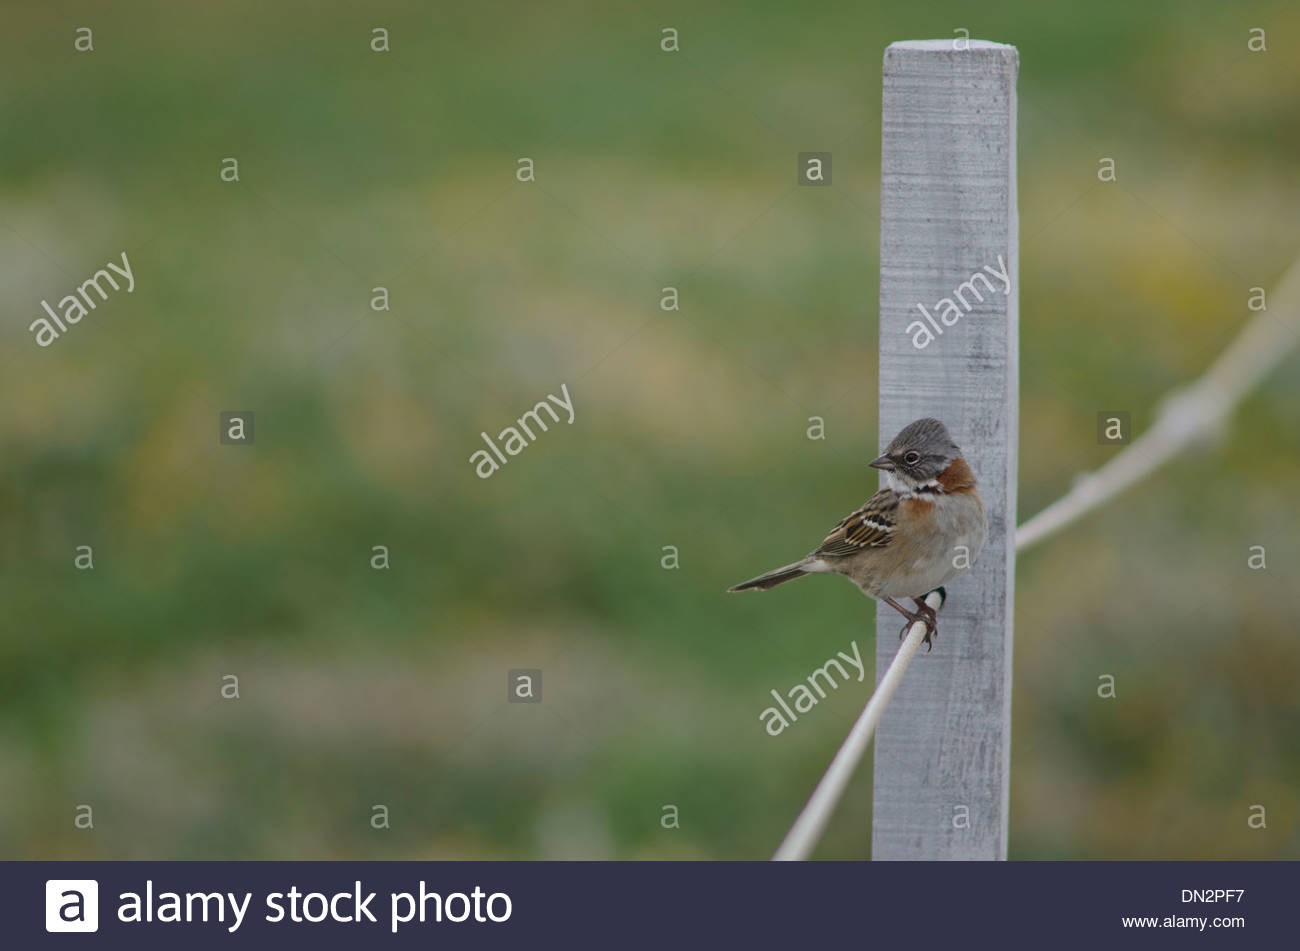 Rufous-collared Sparrow (Zonotrichia capensis) sitting on rope. Stock Photo